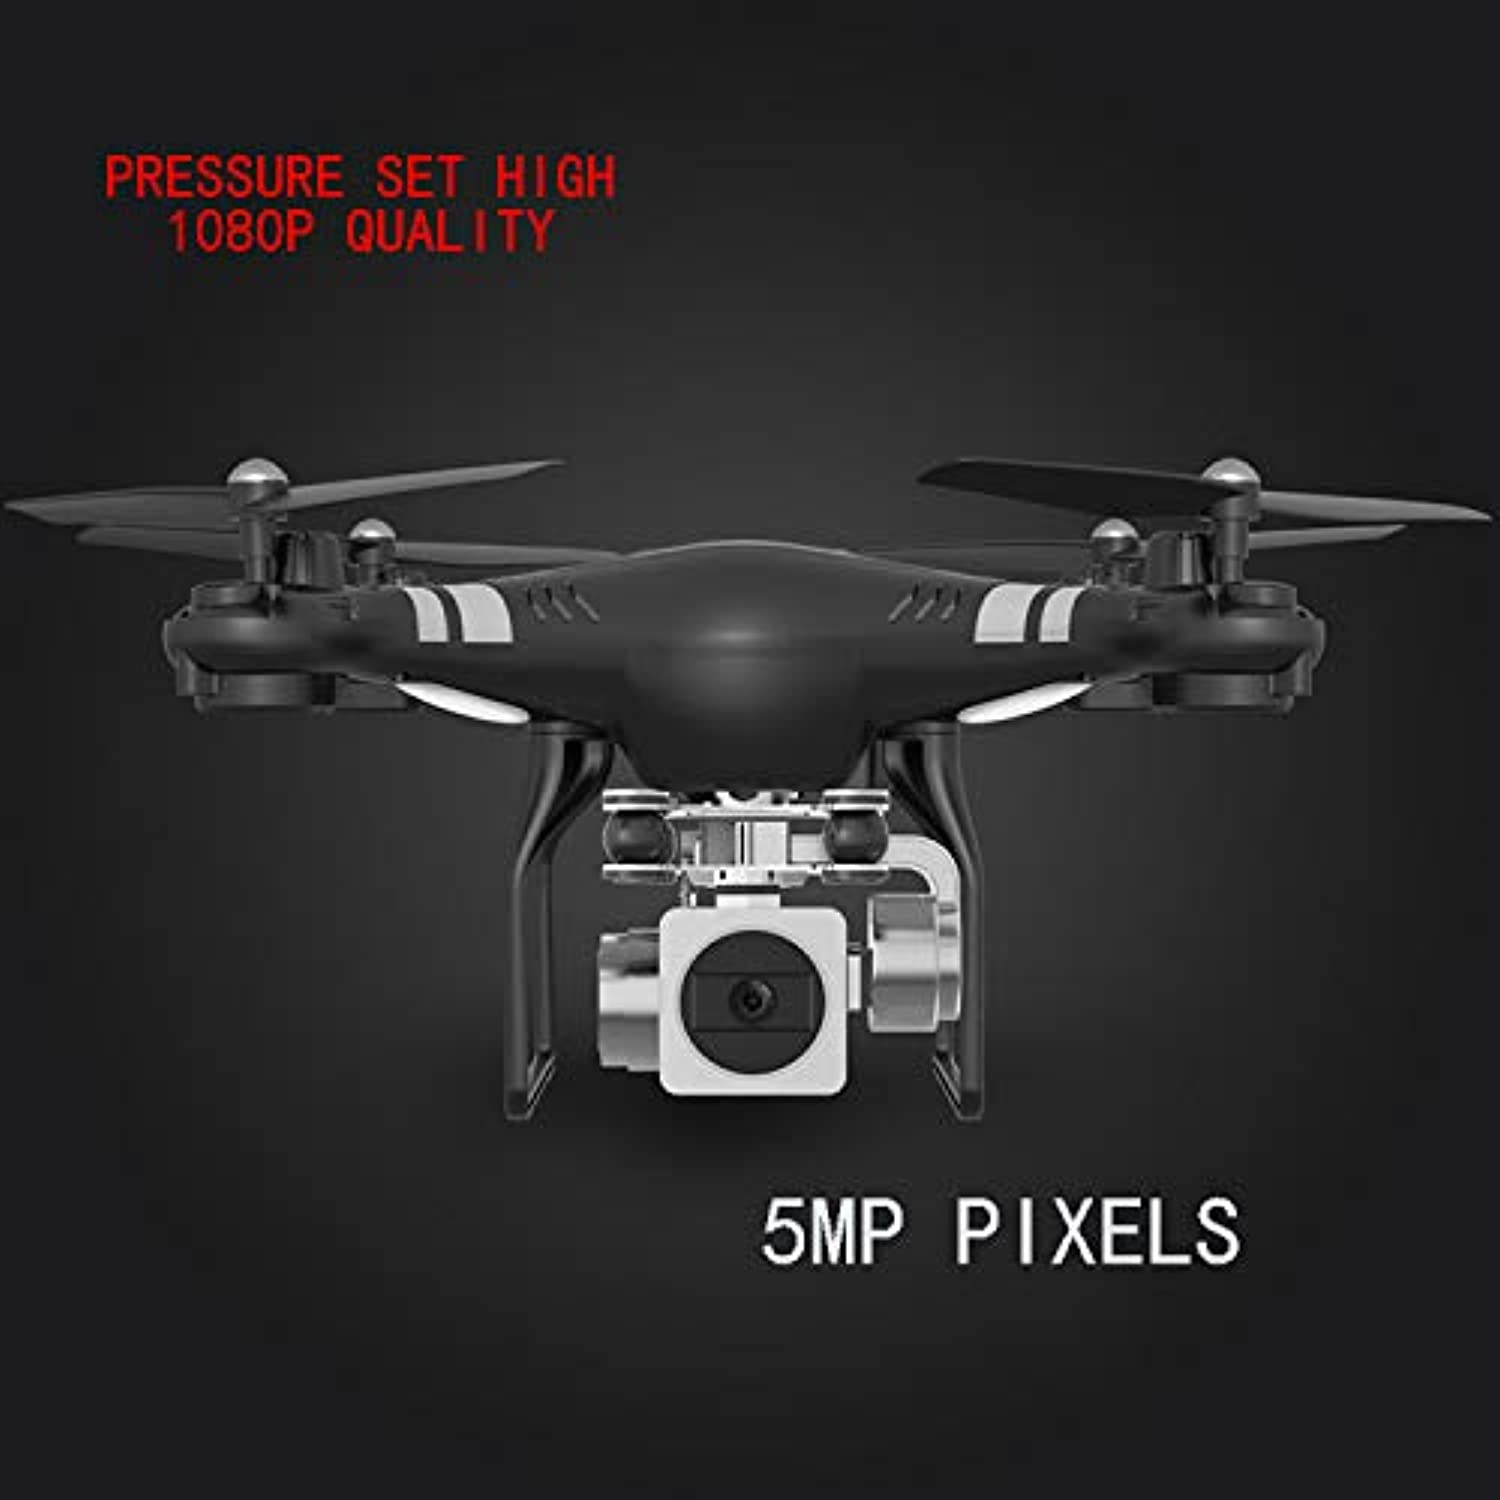 Generic 5MP HD Camera Drone WiFi FPV Live Quadcopter Smart Altitude Hold Hover RC Helicopter 2.4G 6 Axis Gyro Drone Drones with Camera 5MP camera10